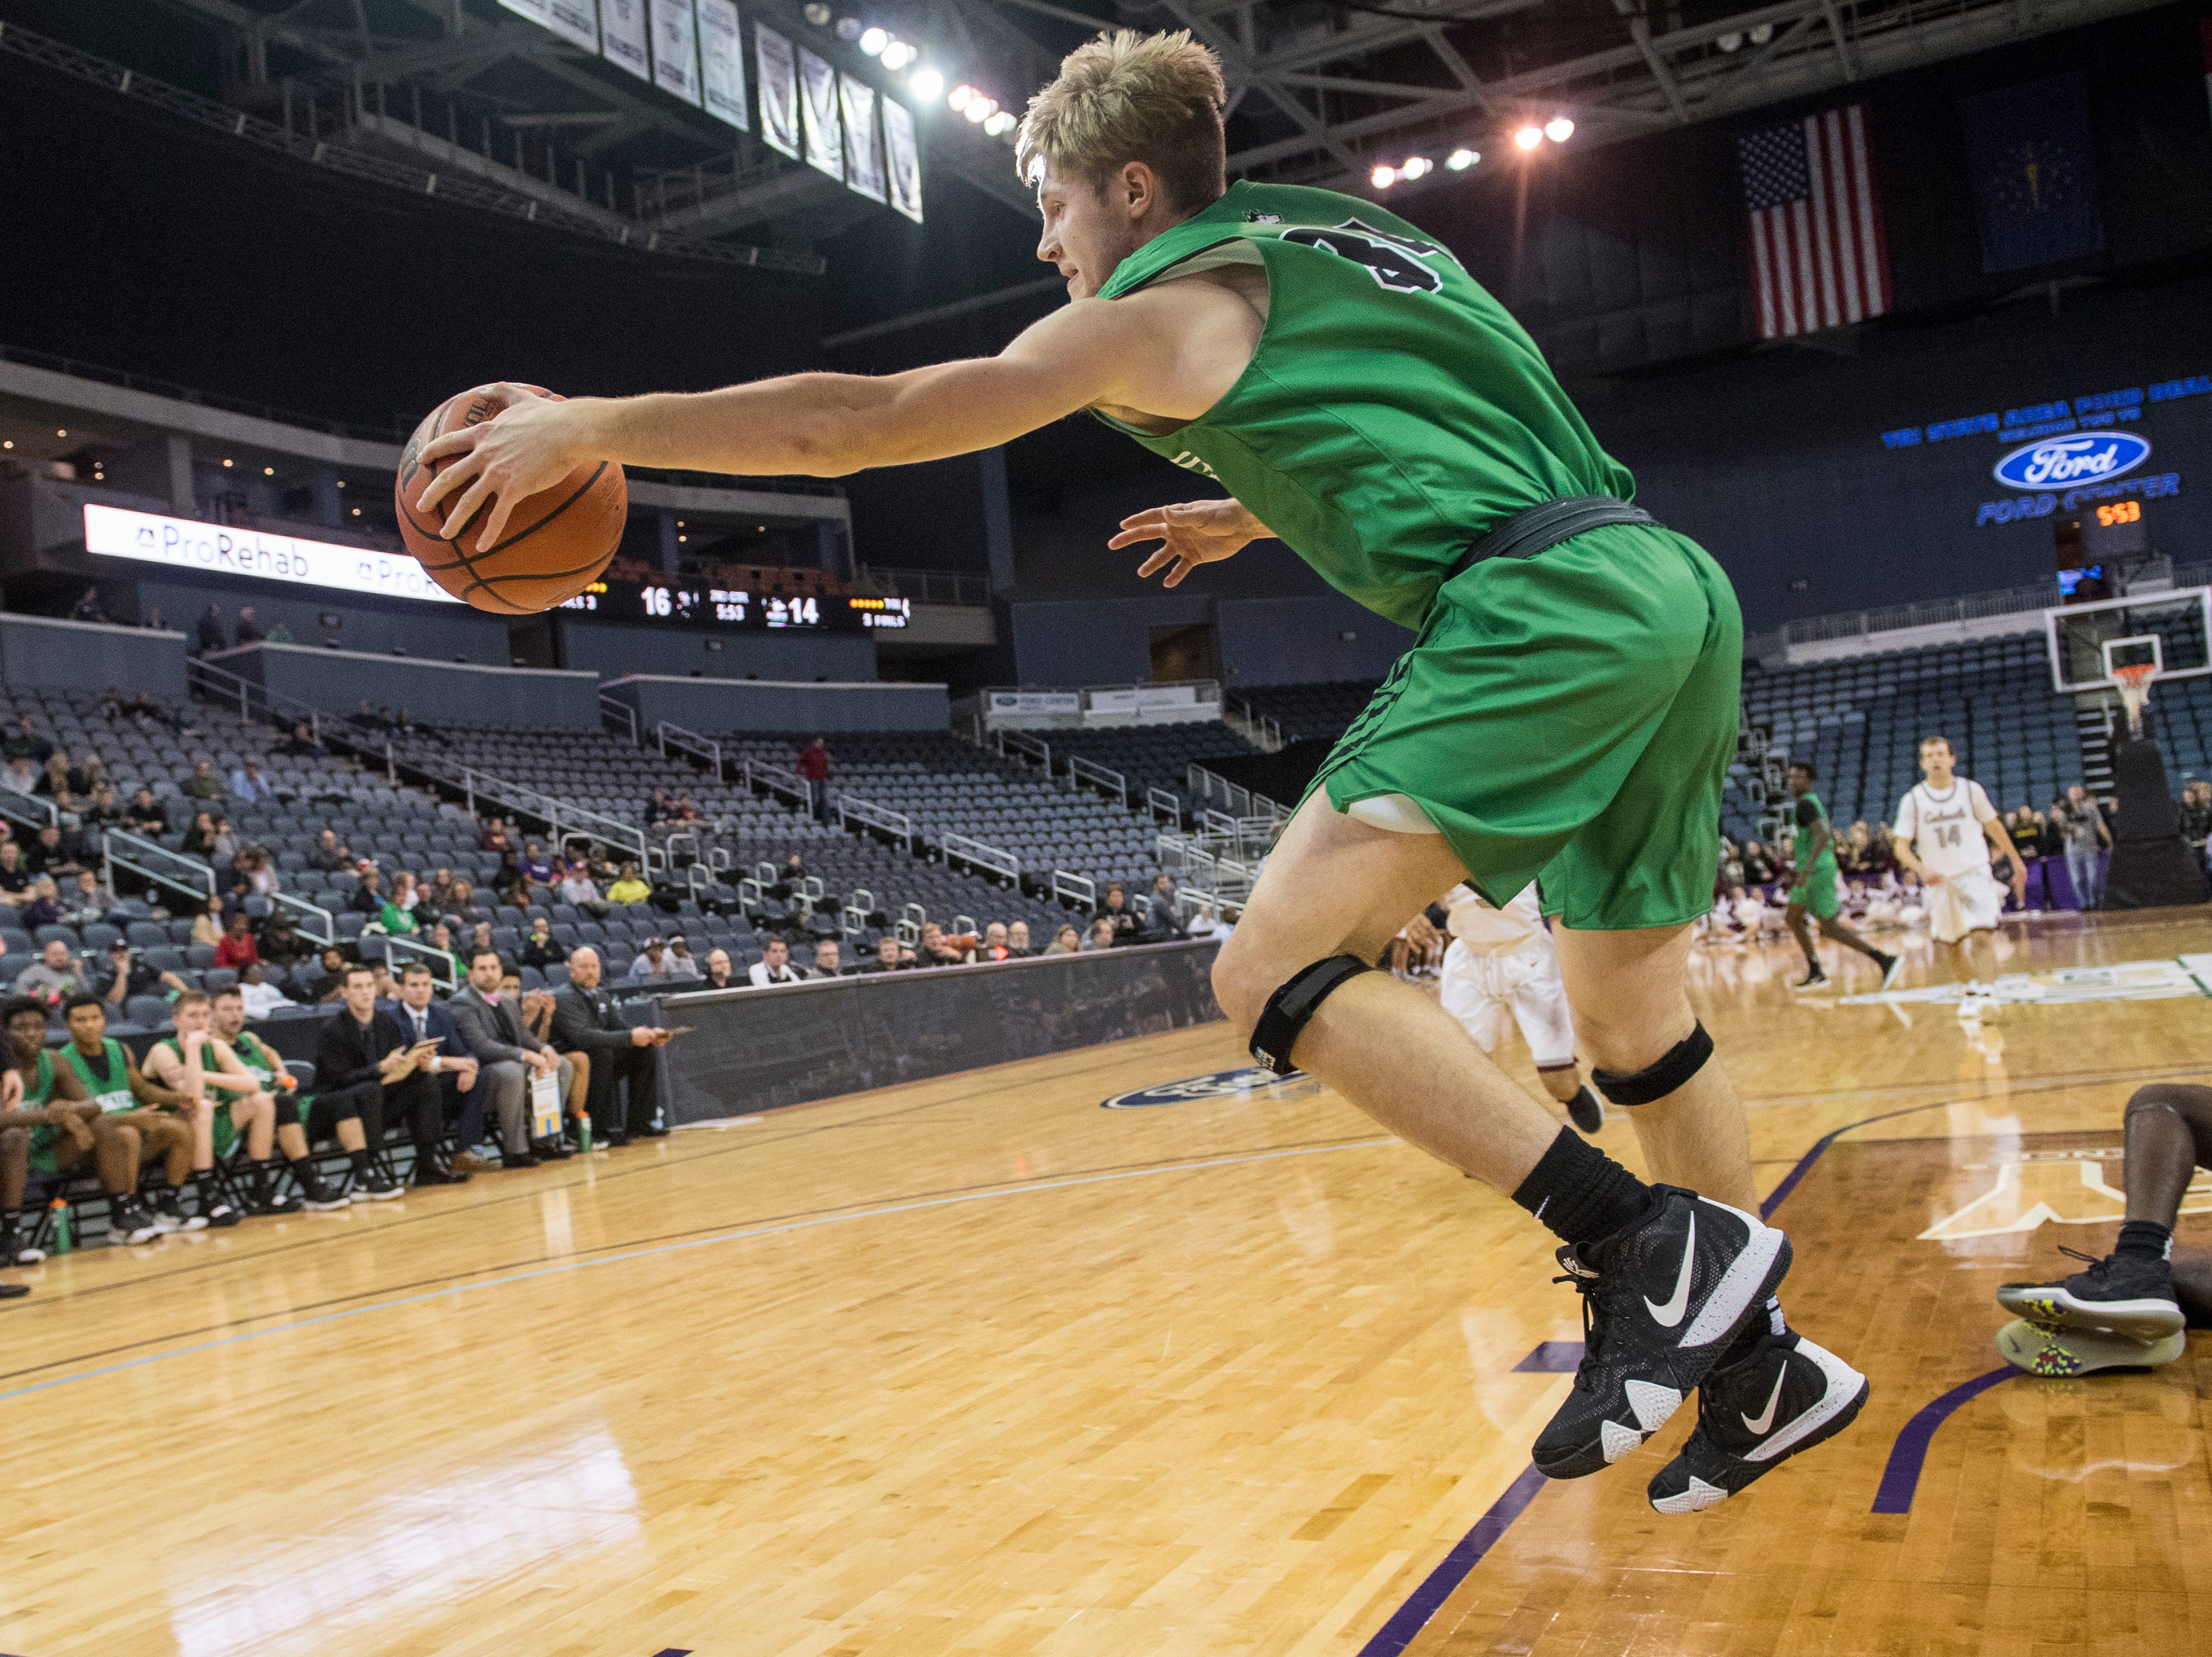 North's Adam Bury (34) saves the ball from going out-of-bounds during the Henderson County vs Evansville North basketball game in the River City Showcase at the Ford Center Friday, Dec. 7, 2018.